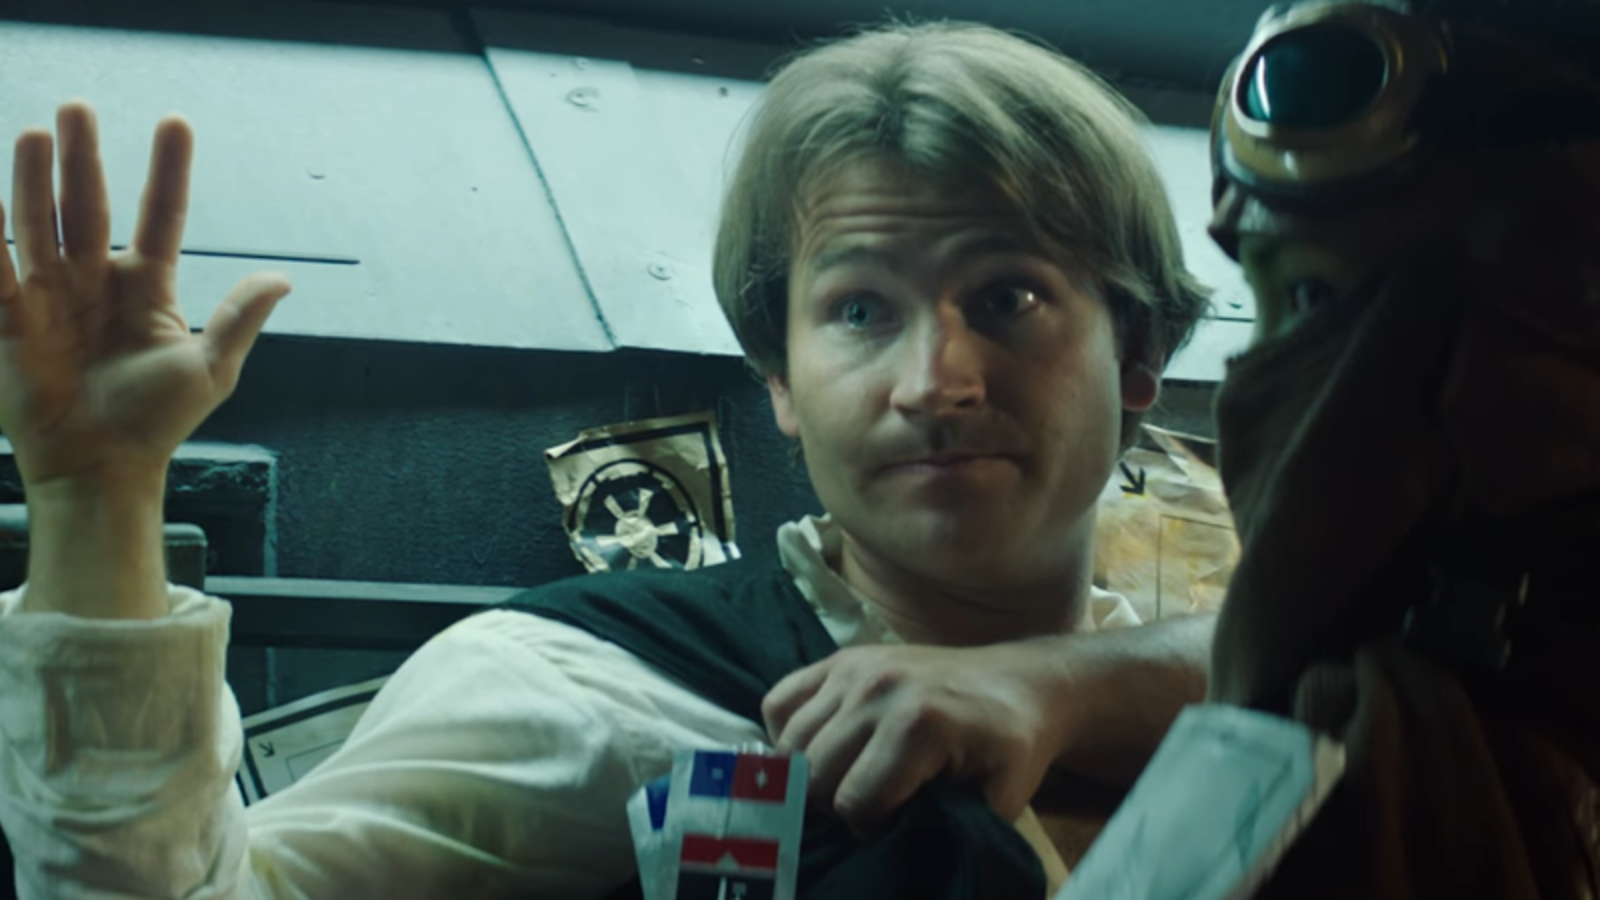 This Han Solo Fan Film Is the Next Best Thing While Waiting For the New Star Wars Spinoff